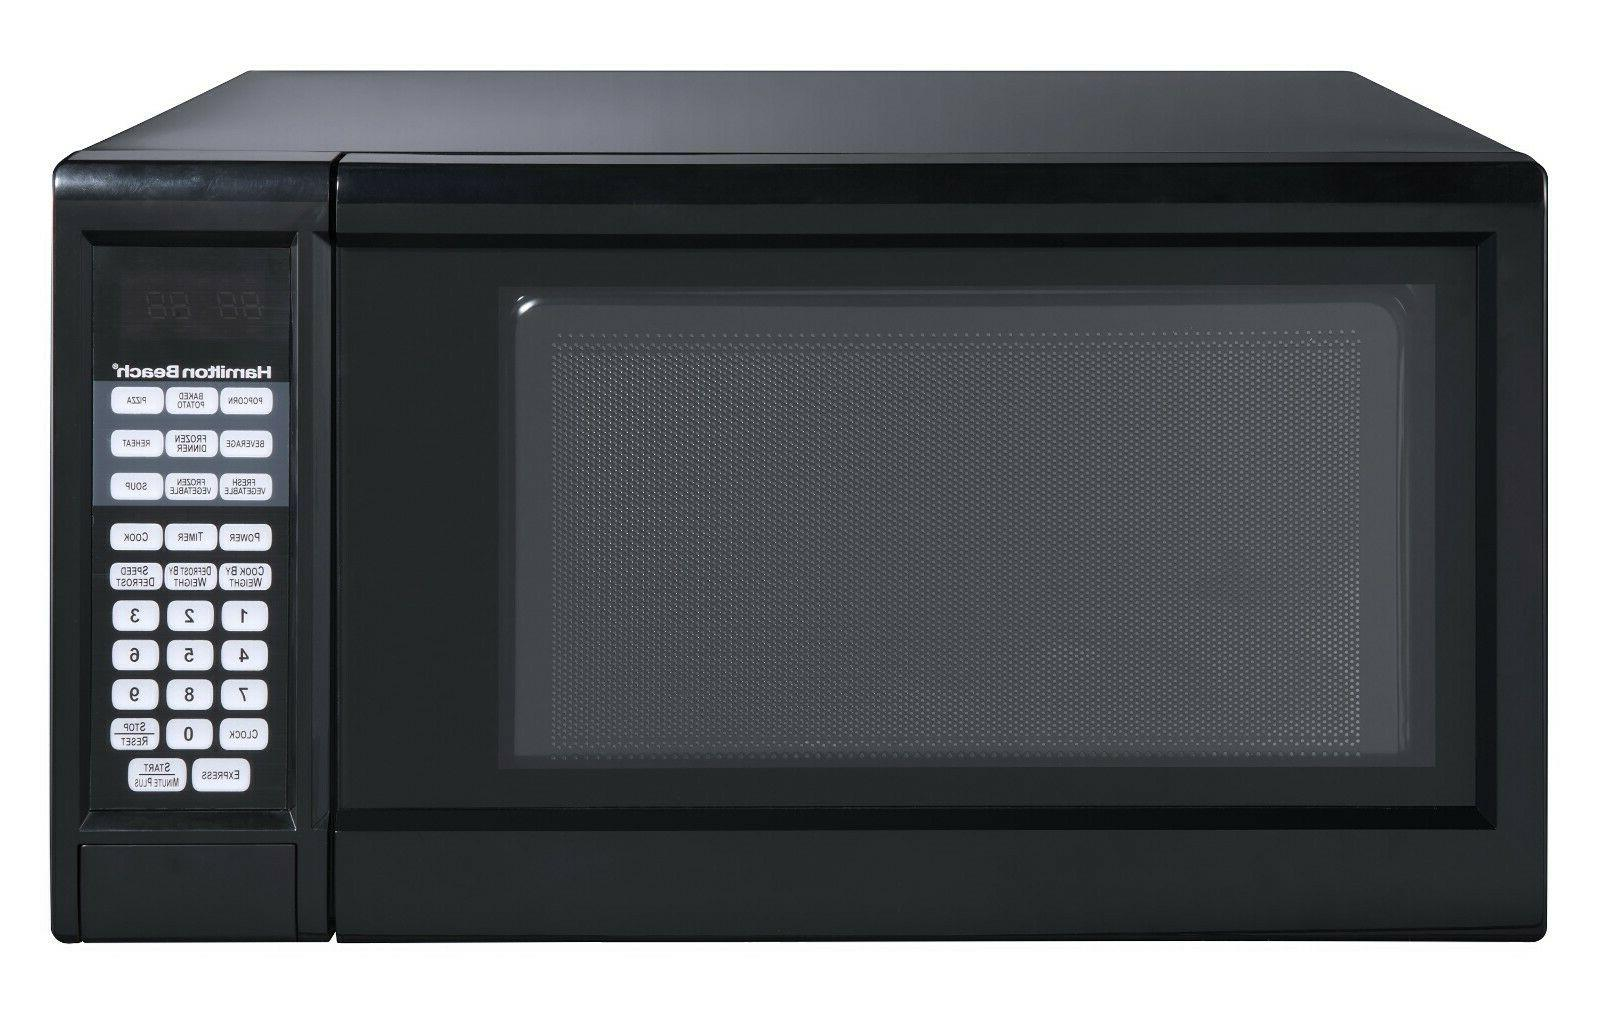 1.3 Cu Ft Digital Microwave Oven Counter Top Appliance Black